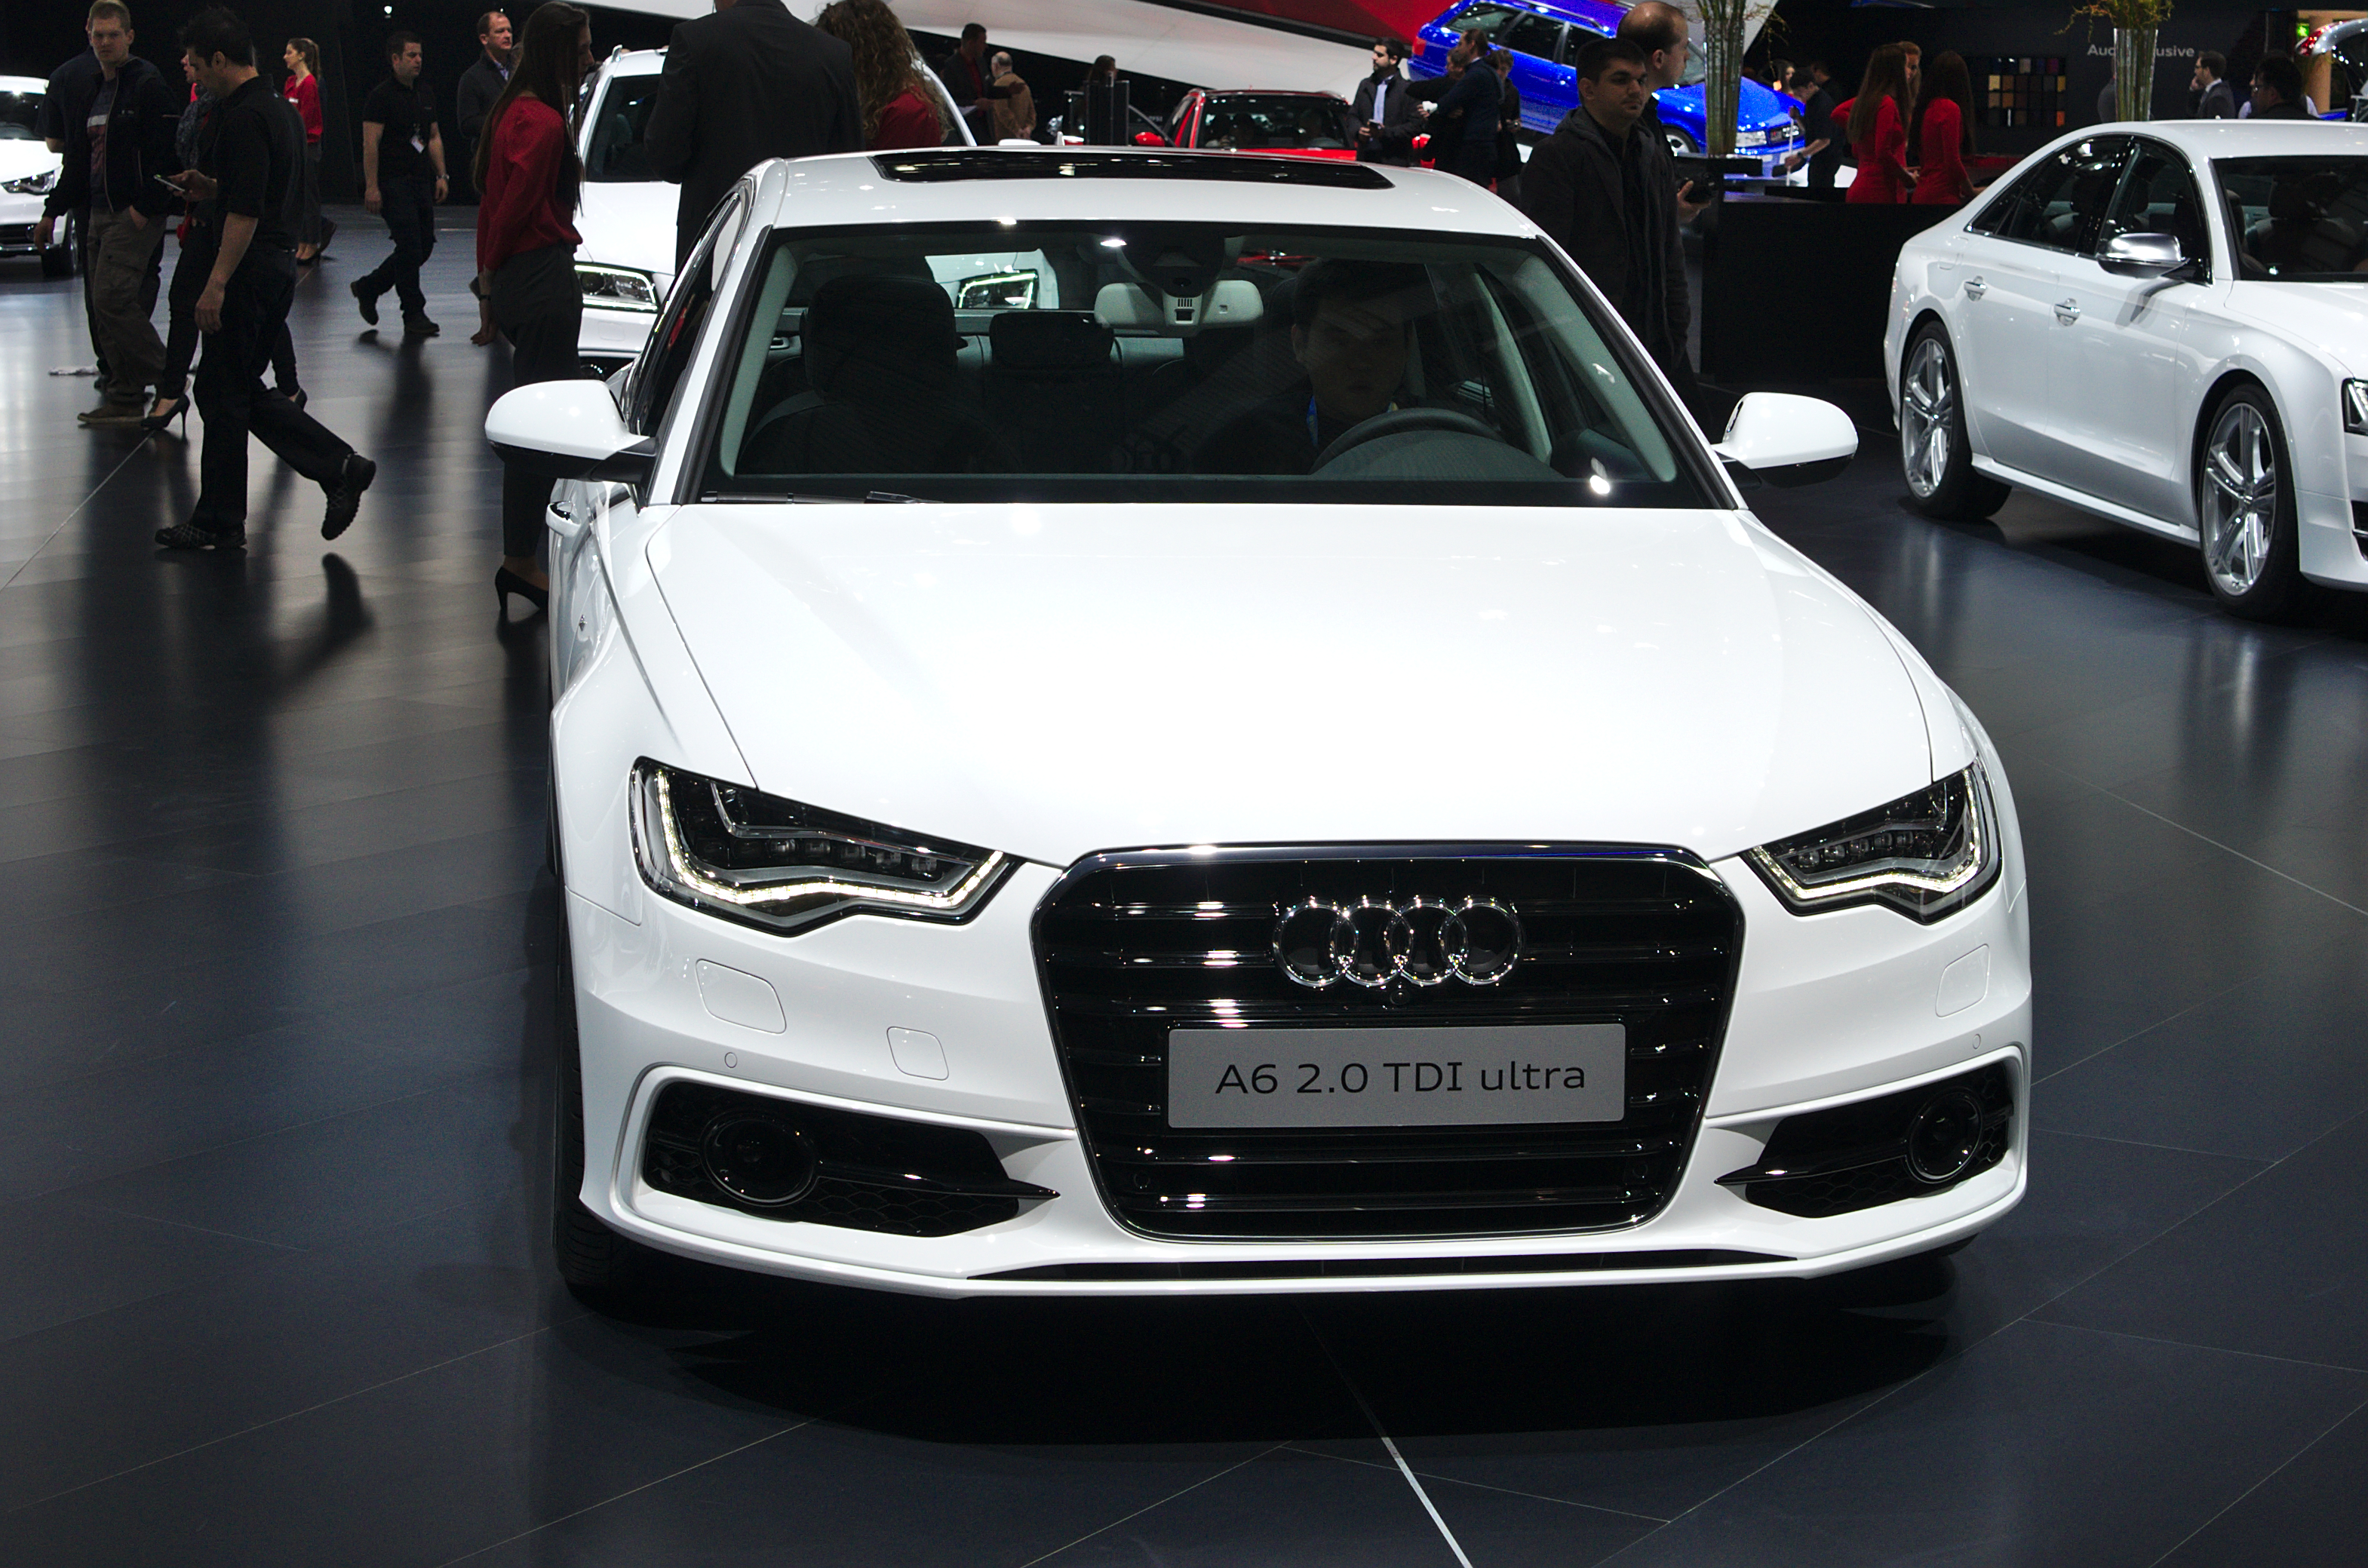 File salon de l 39 auto de gen ve 2014 20140305 audi a6 2 for Adresse salon de l auto geneve